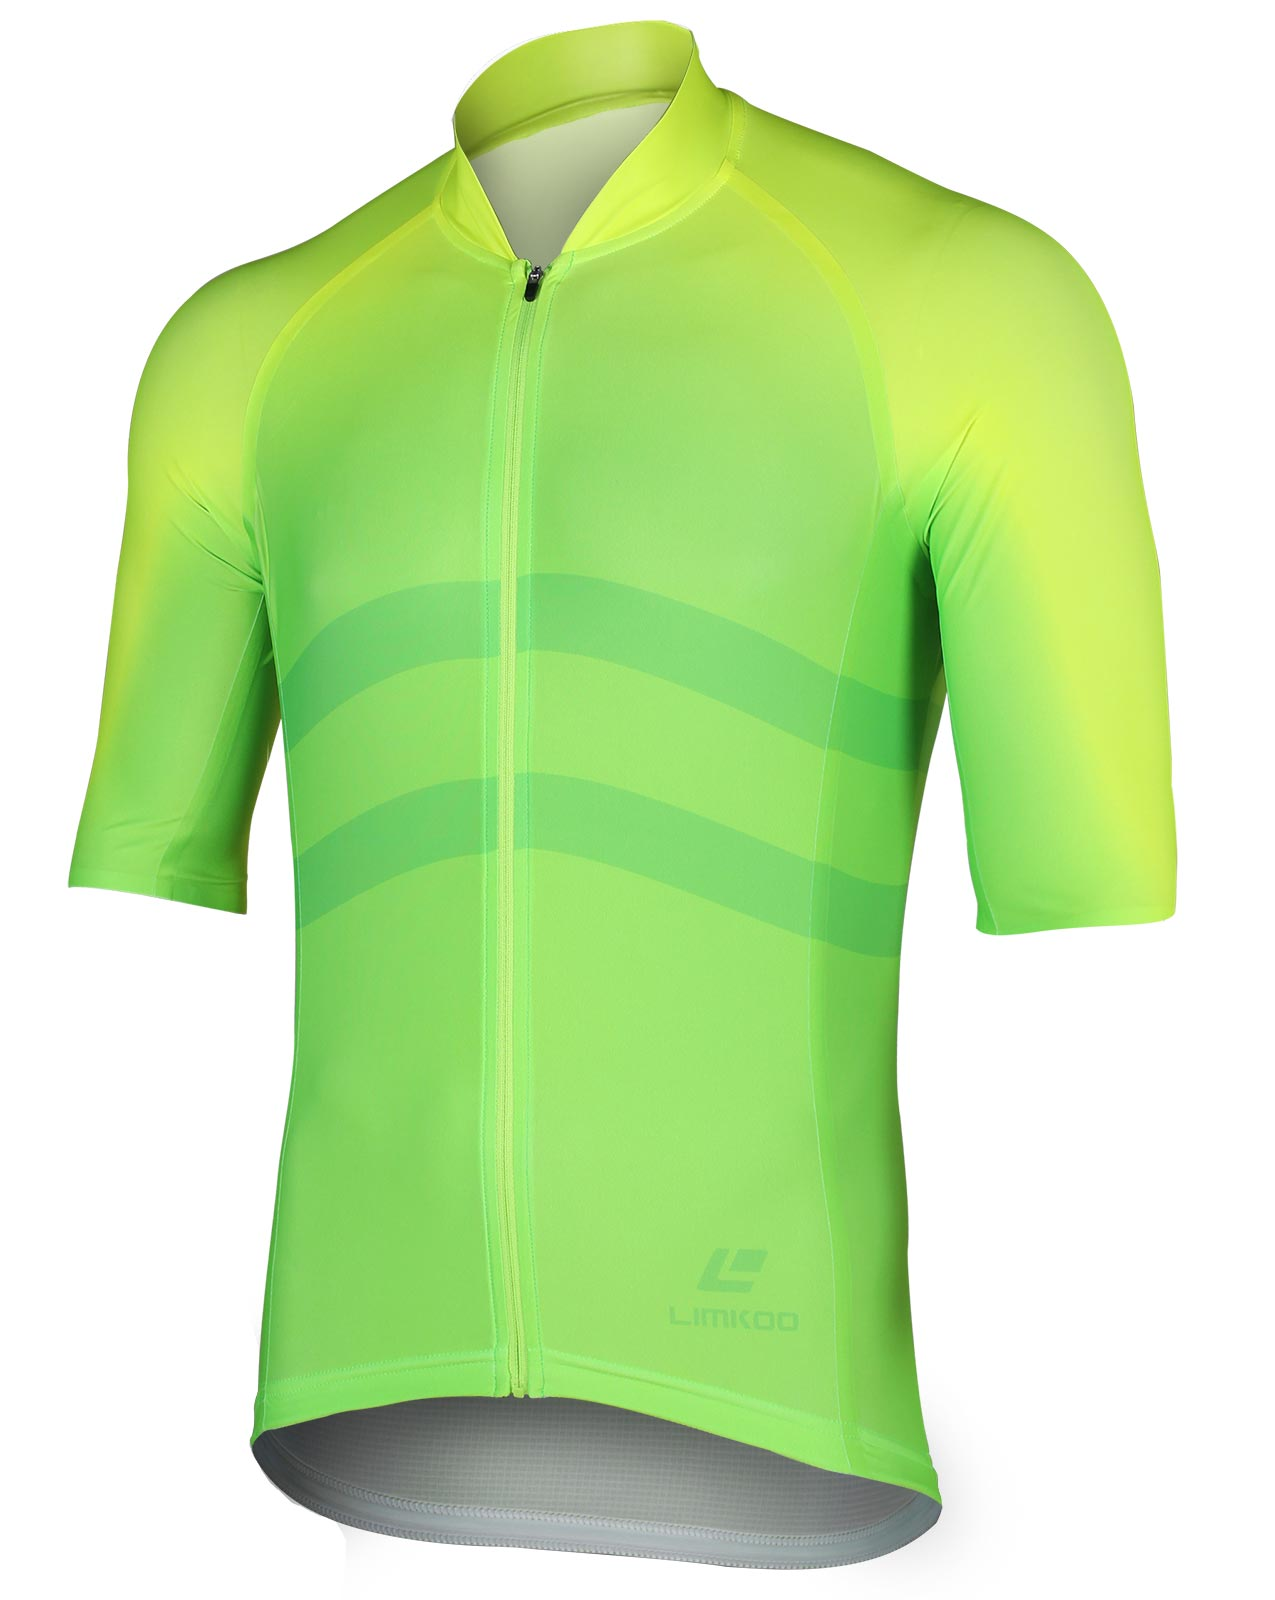 Italian Technical Seamlessly Heat Bonded Cycling Jersey